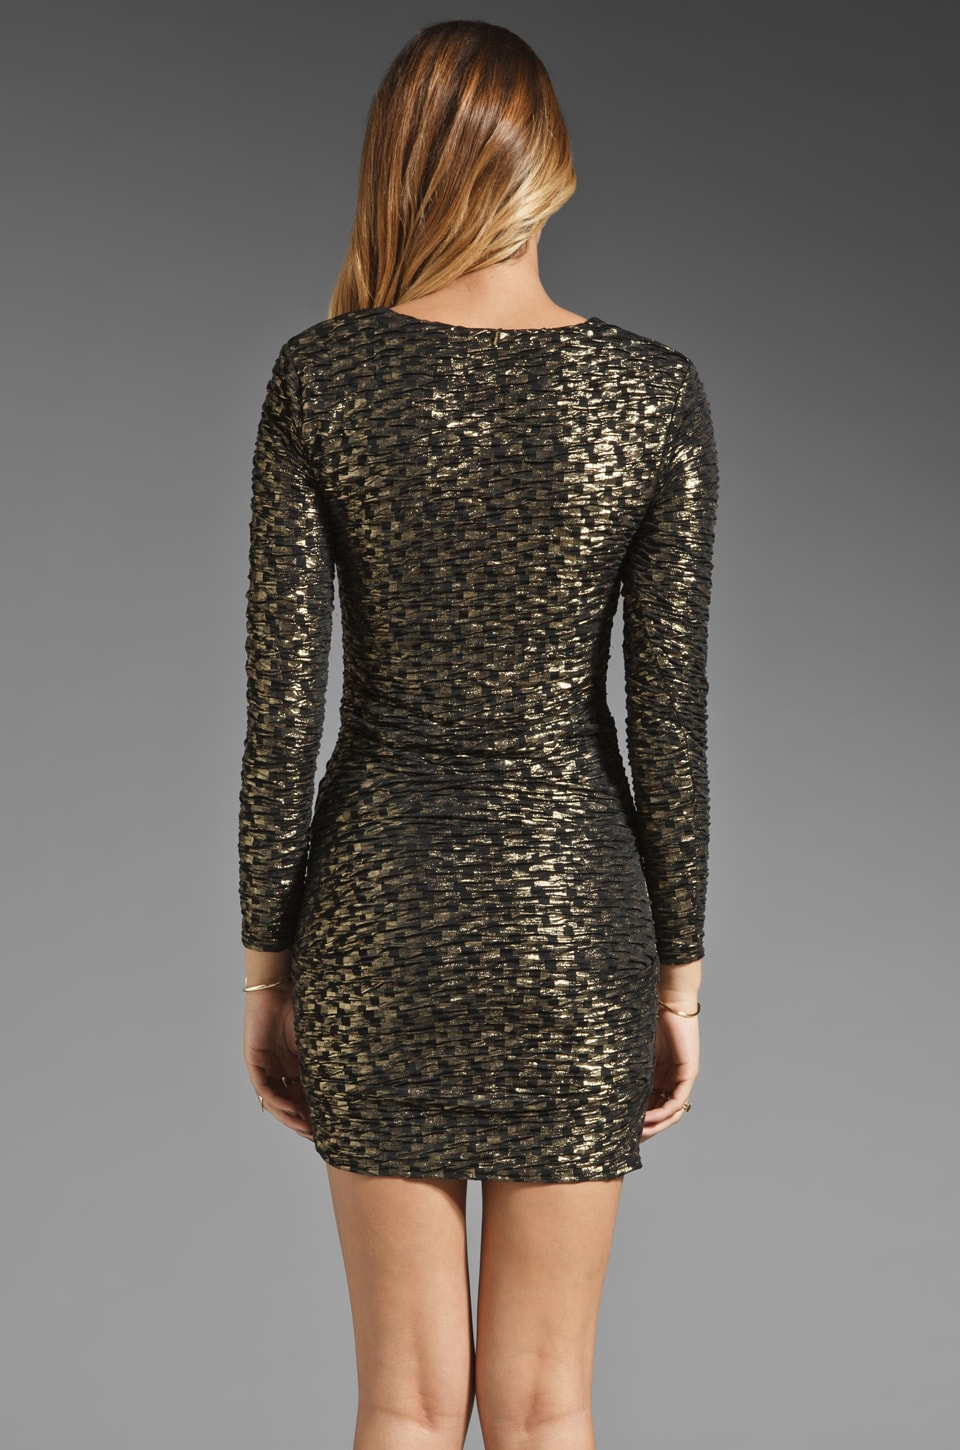 T-Bags LosAngeles Long Sleeve Mini Dress in Black/Gold